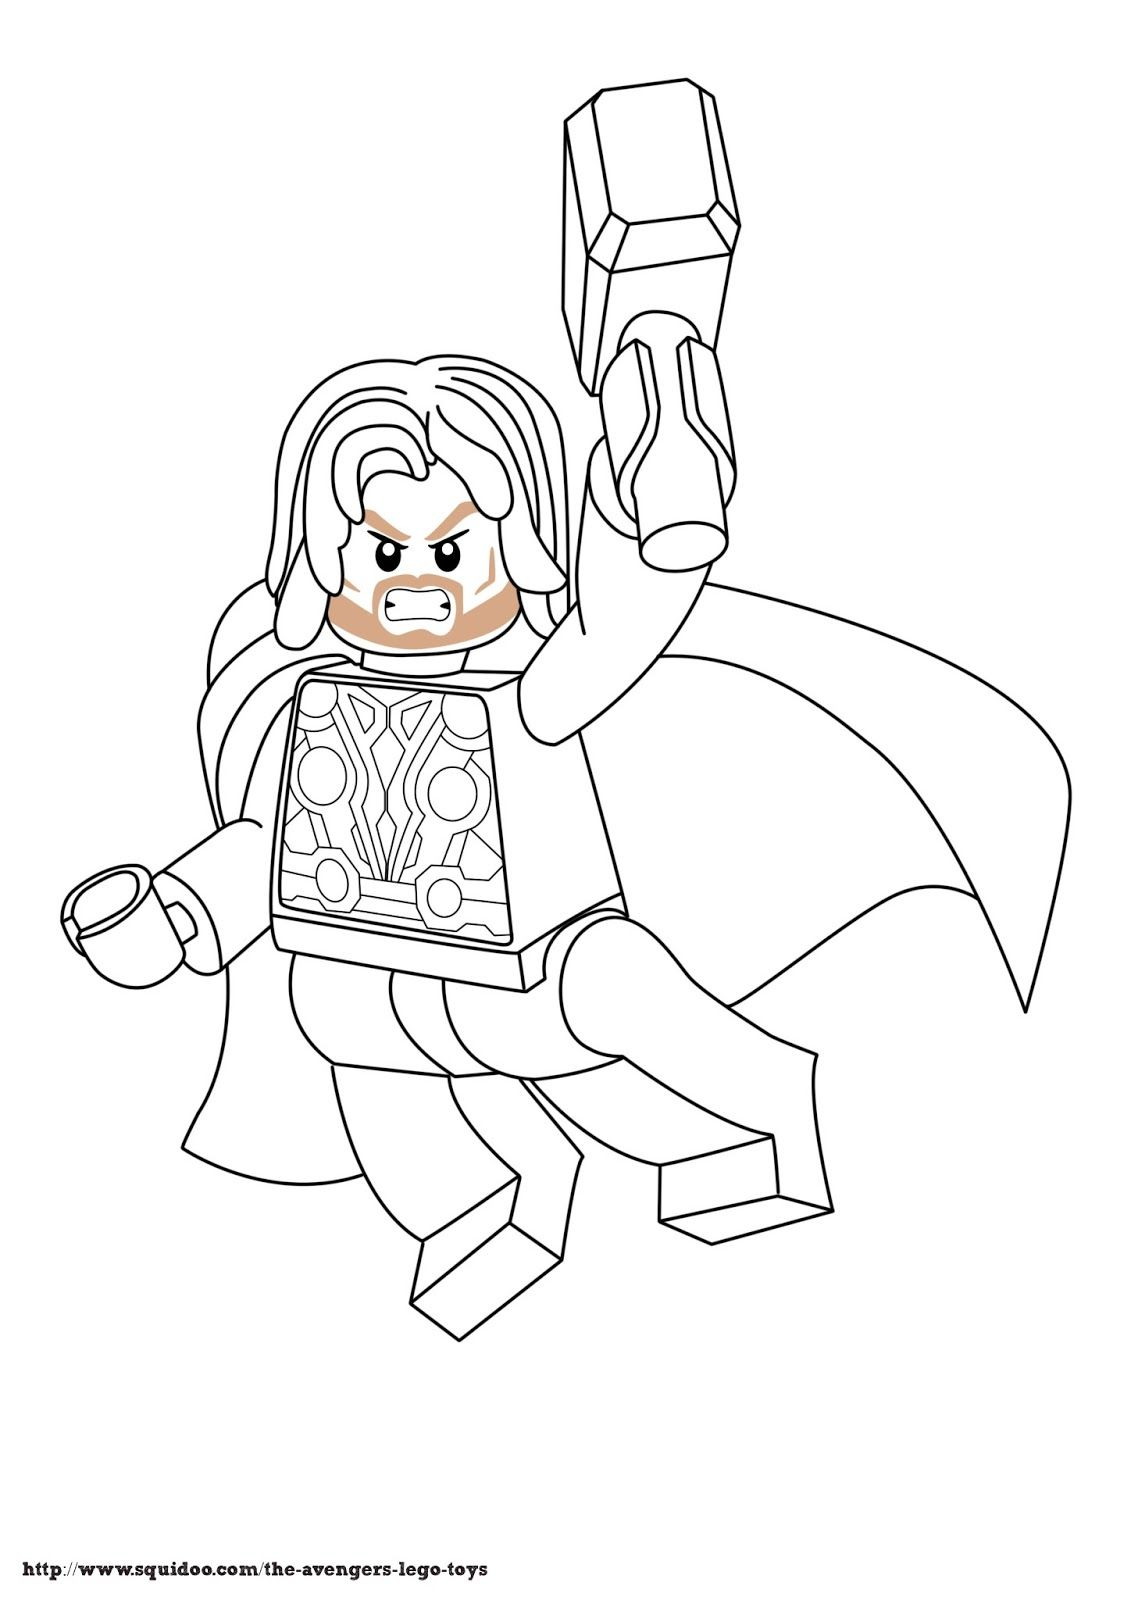 Iron man online coloring games - Thor Coloring Pages To Print Avenger Lego Coloring